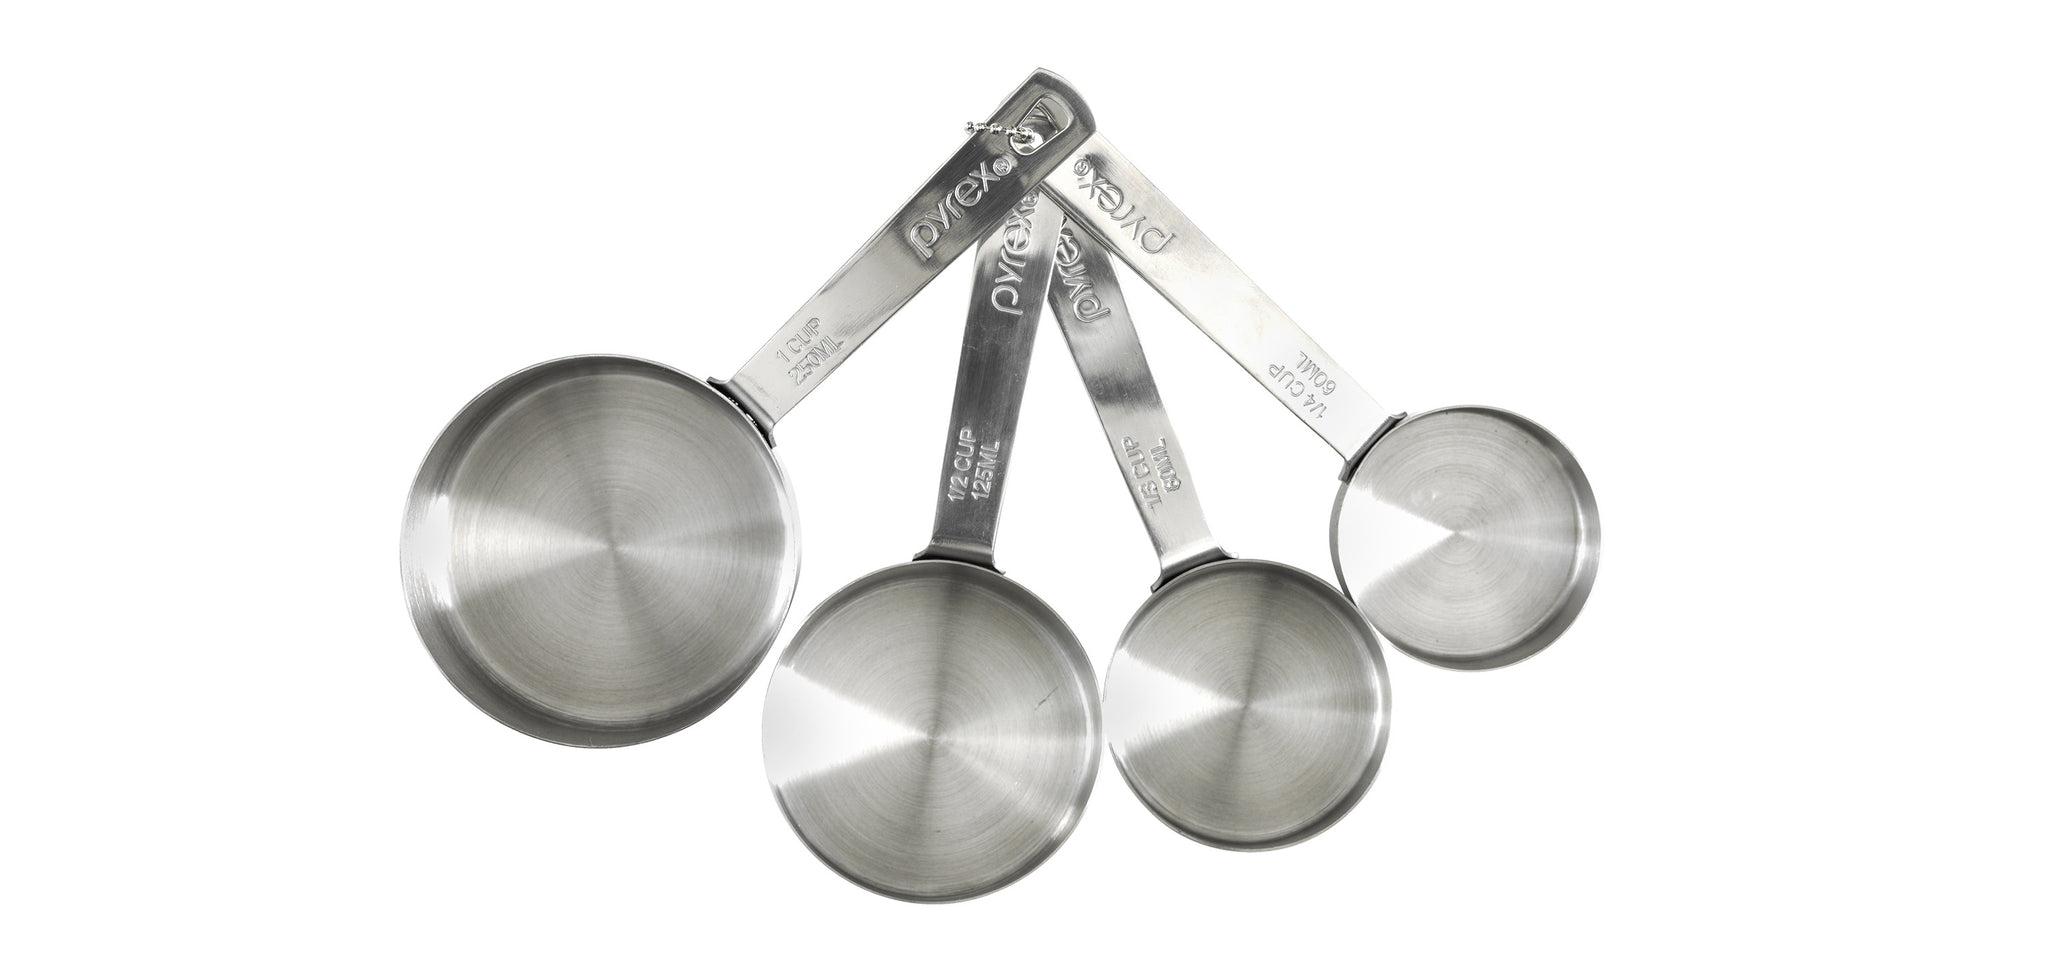 Pyrex Platinum 4 Piece Stainless Steel Measuring Cup-1134697